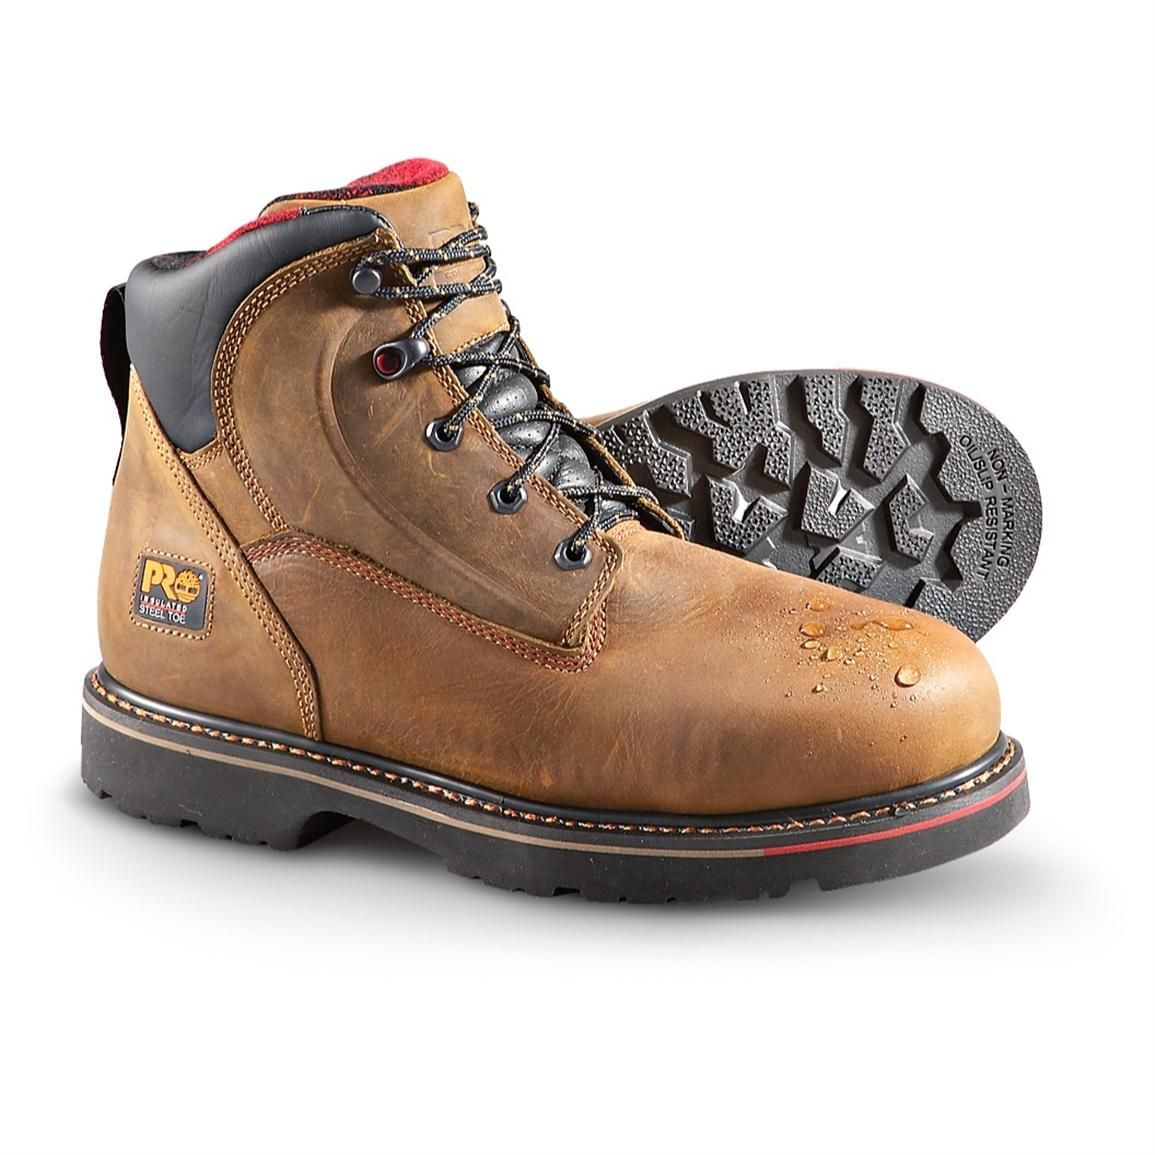 Womens Steel Toe Work Boots Timberland 54